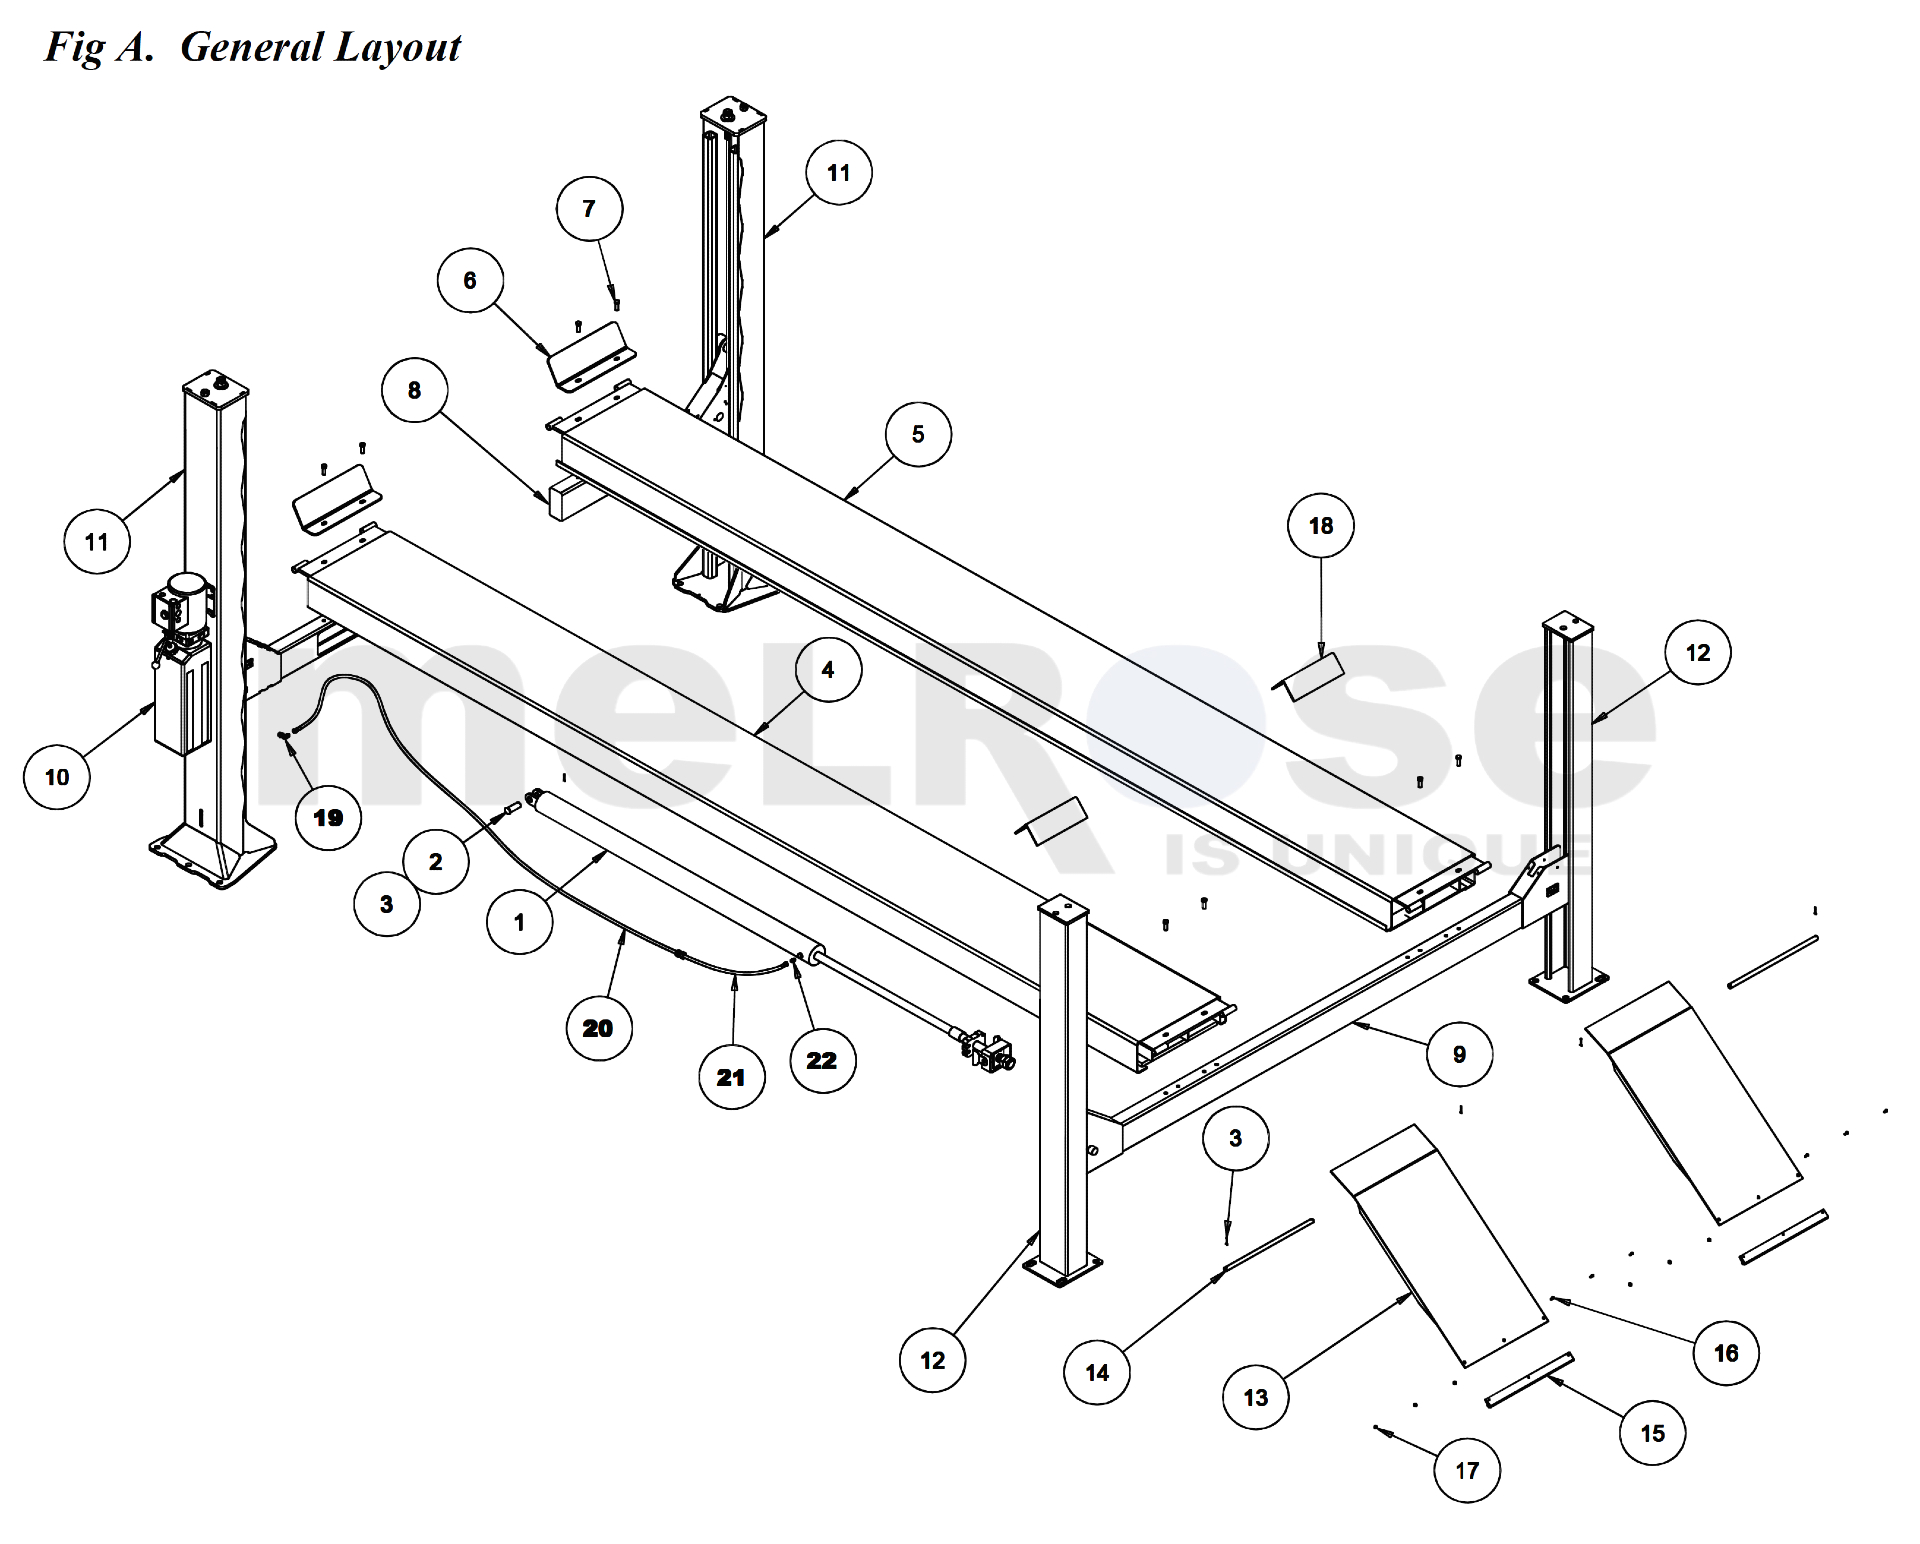 40000-open-front-general-layout-diagram-marked.jpg